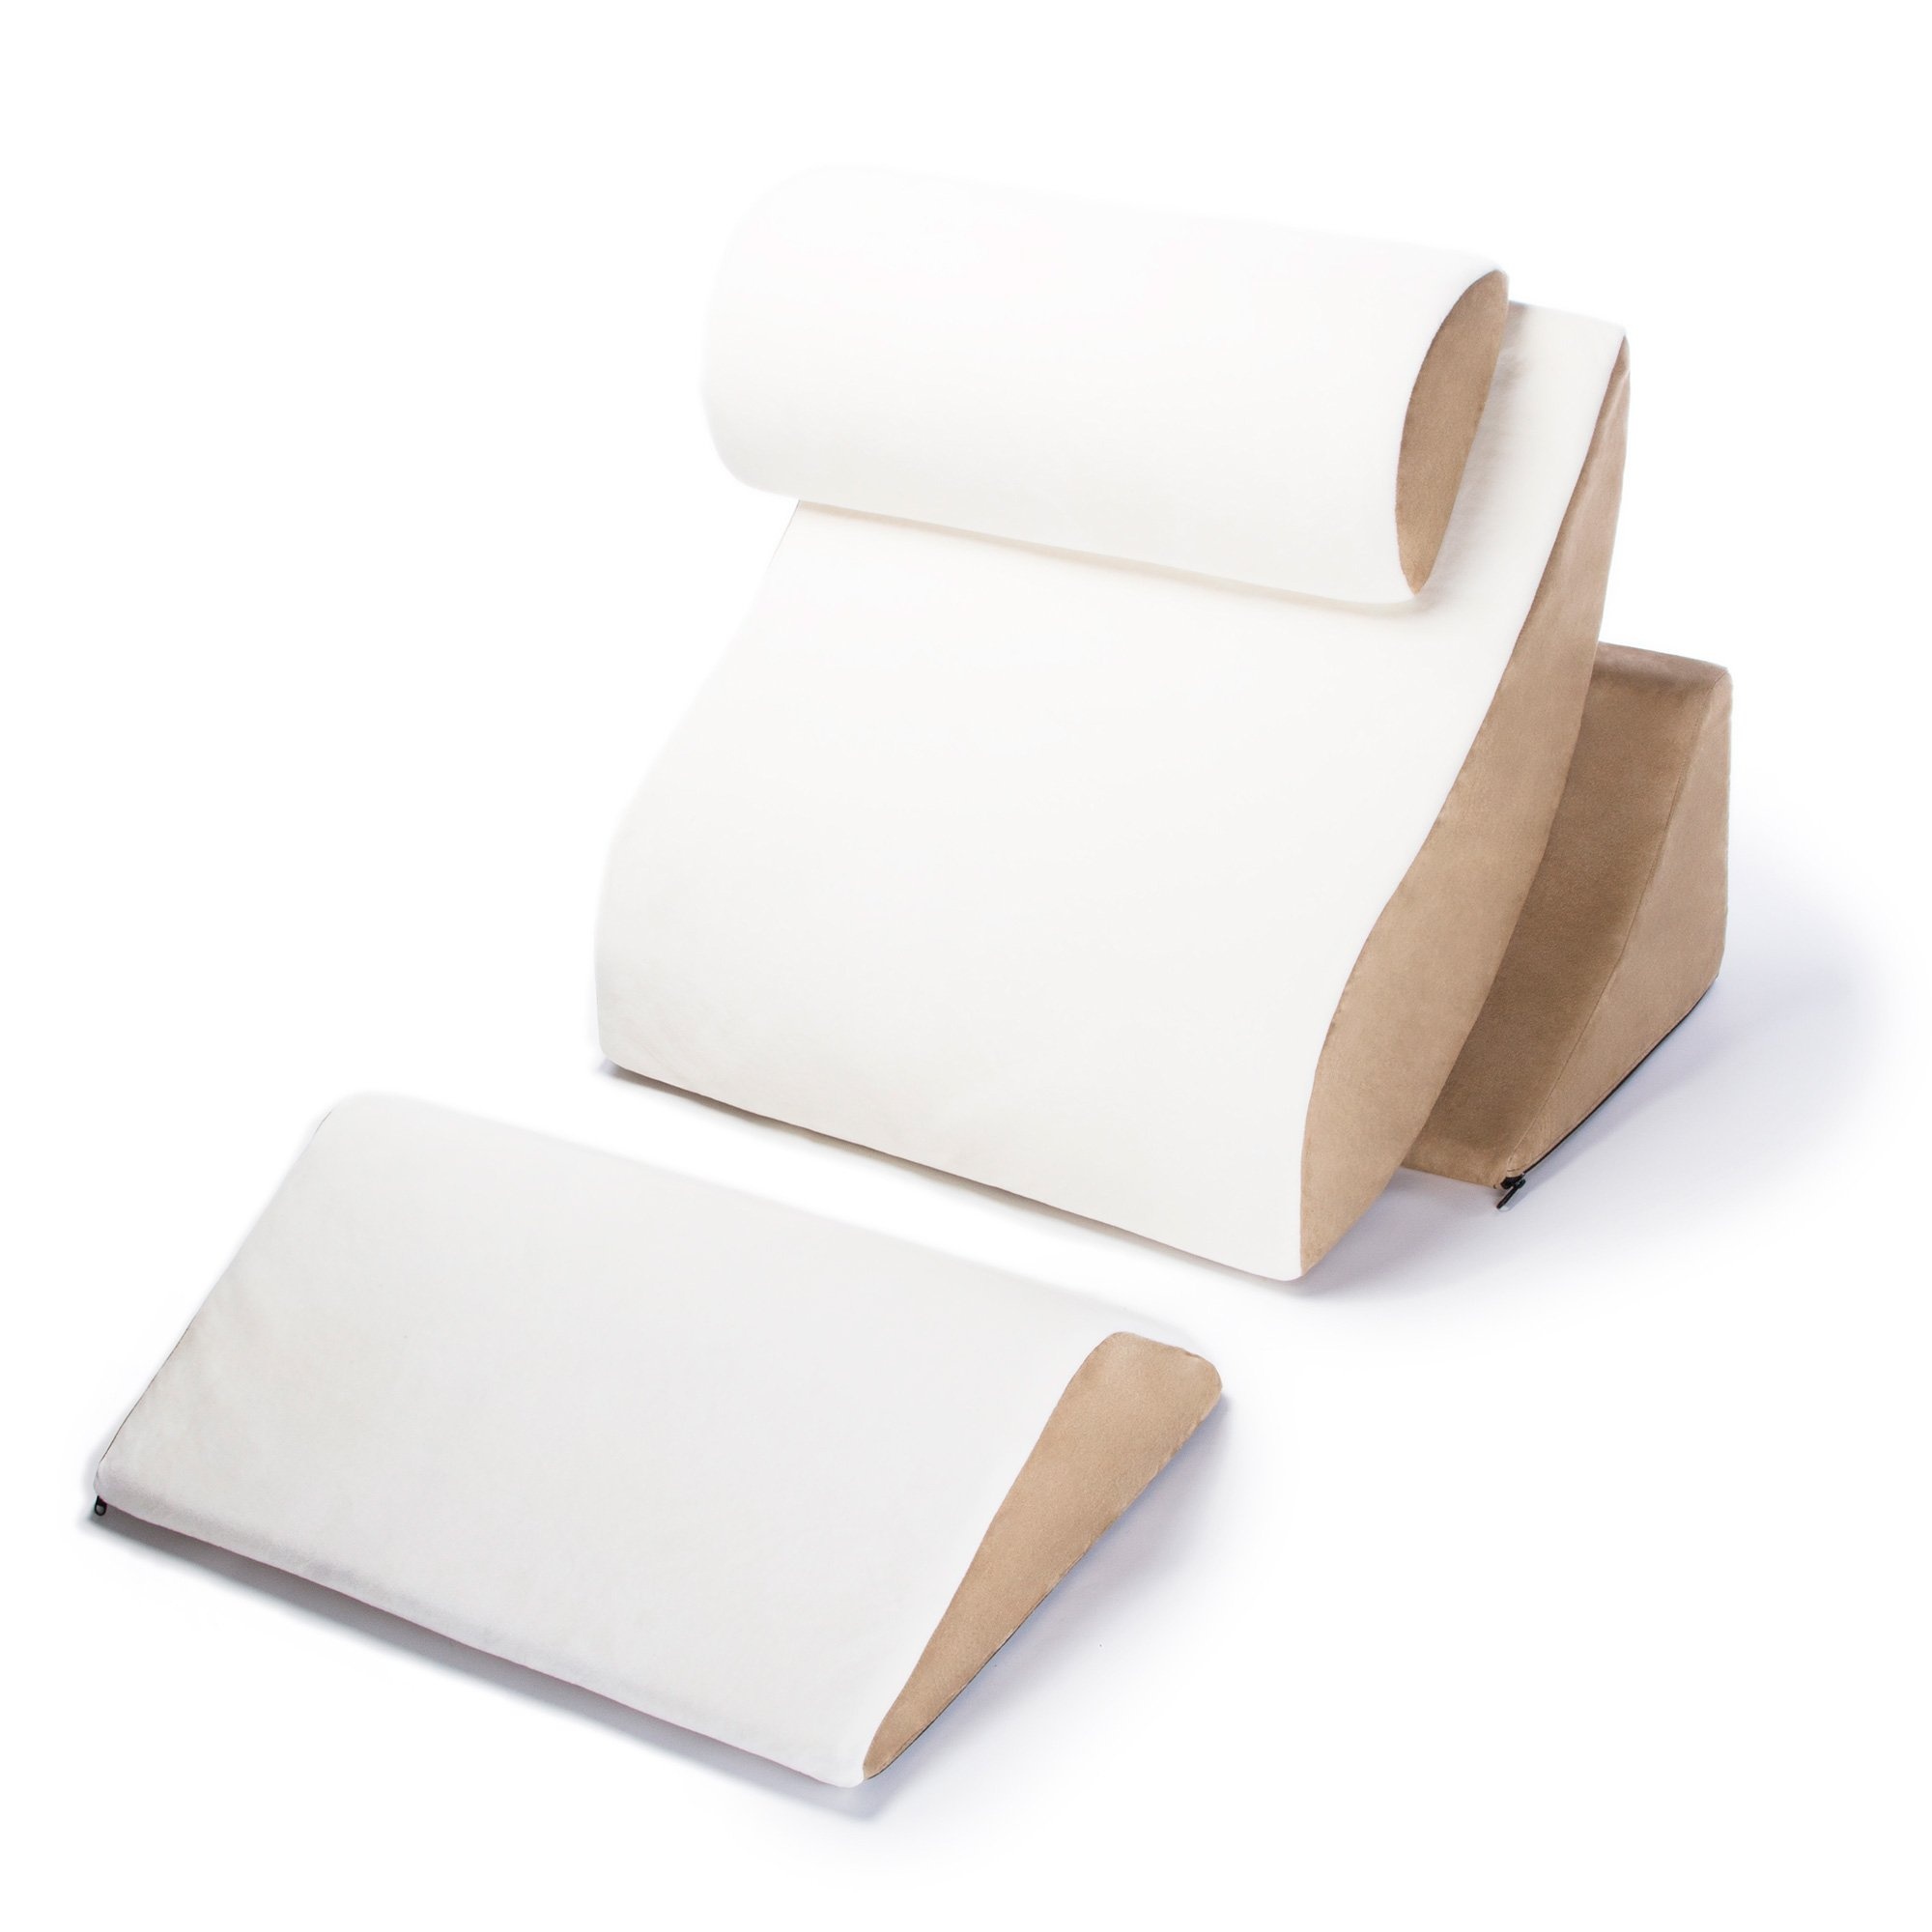 Avana Kind Bed Orthopedic Support Pillow Comfort System, Cloud/Camel, Complete Comfort System by Avana (Image #1)